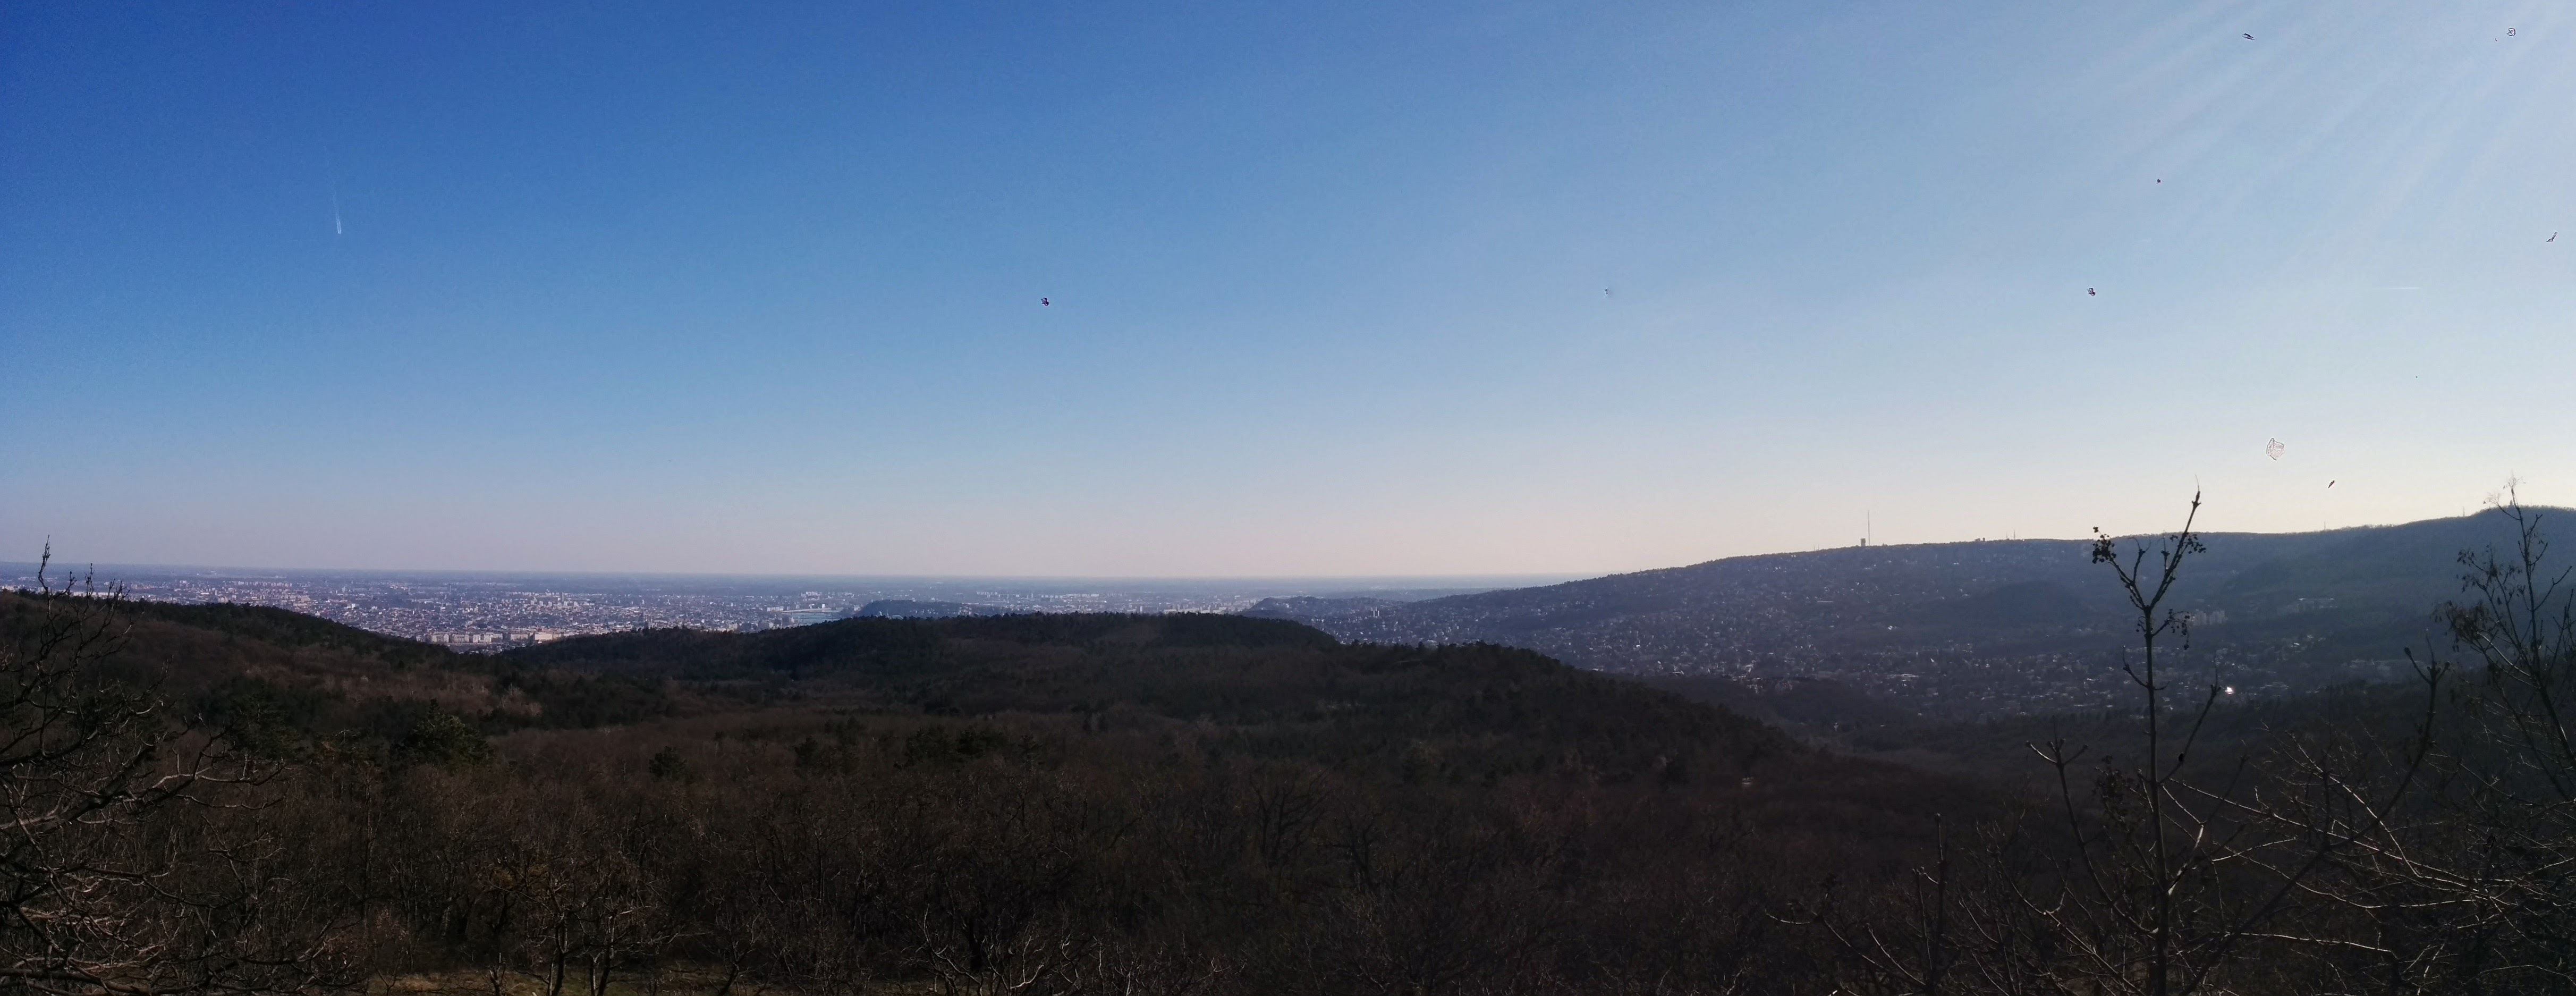 Panorama view from the paraglider start site